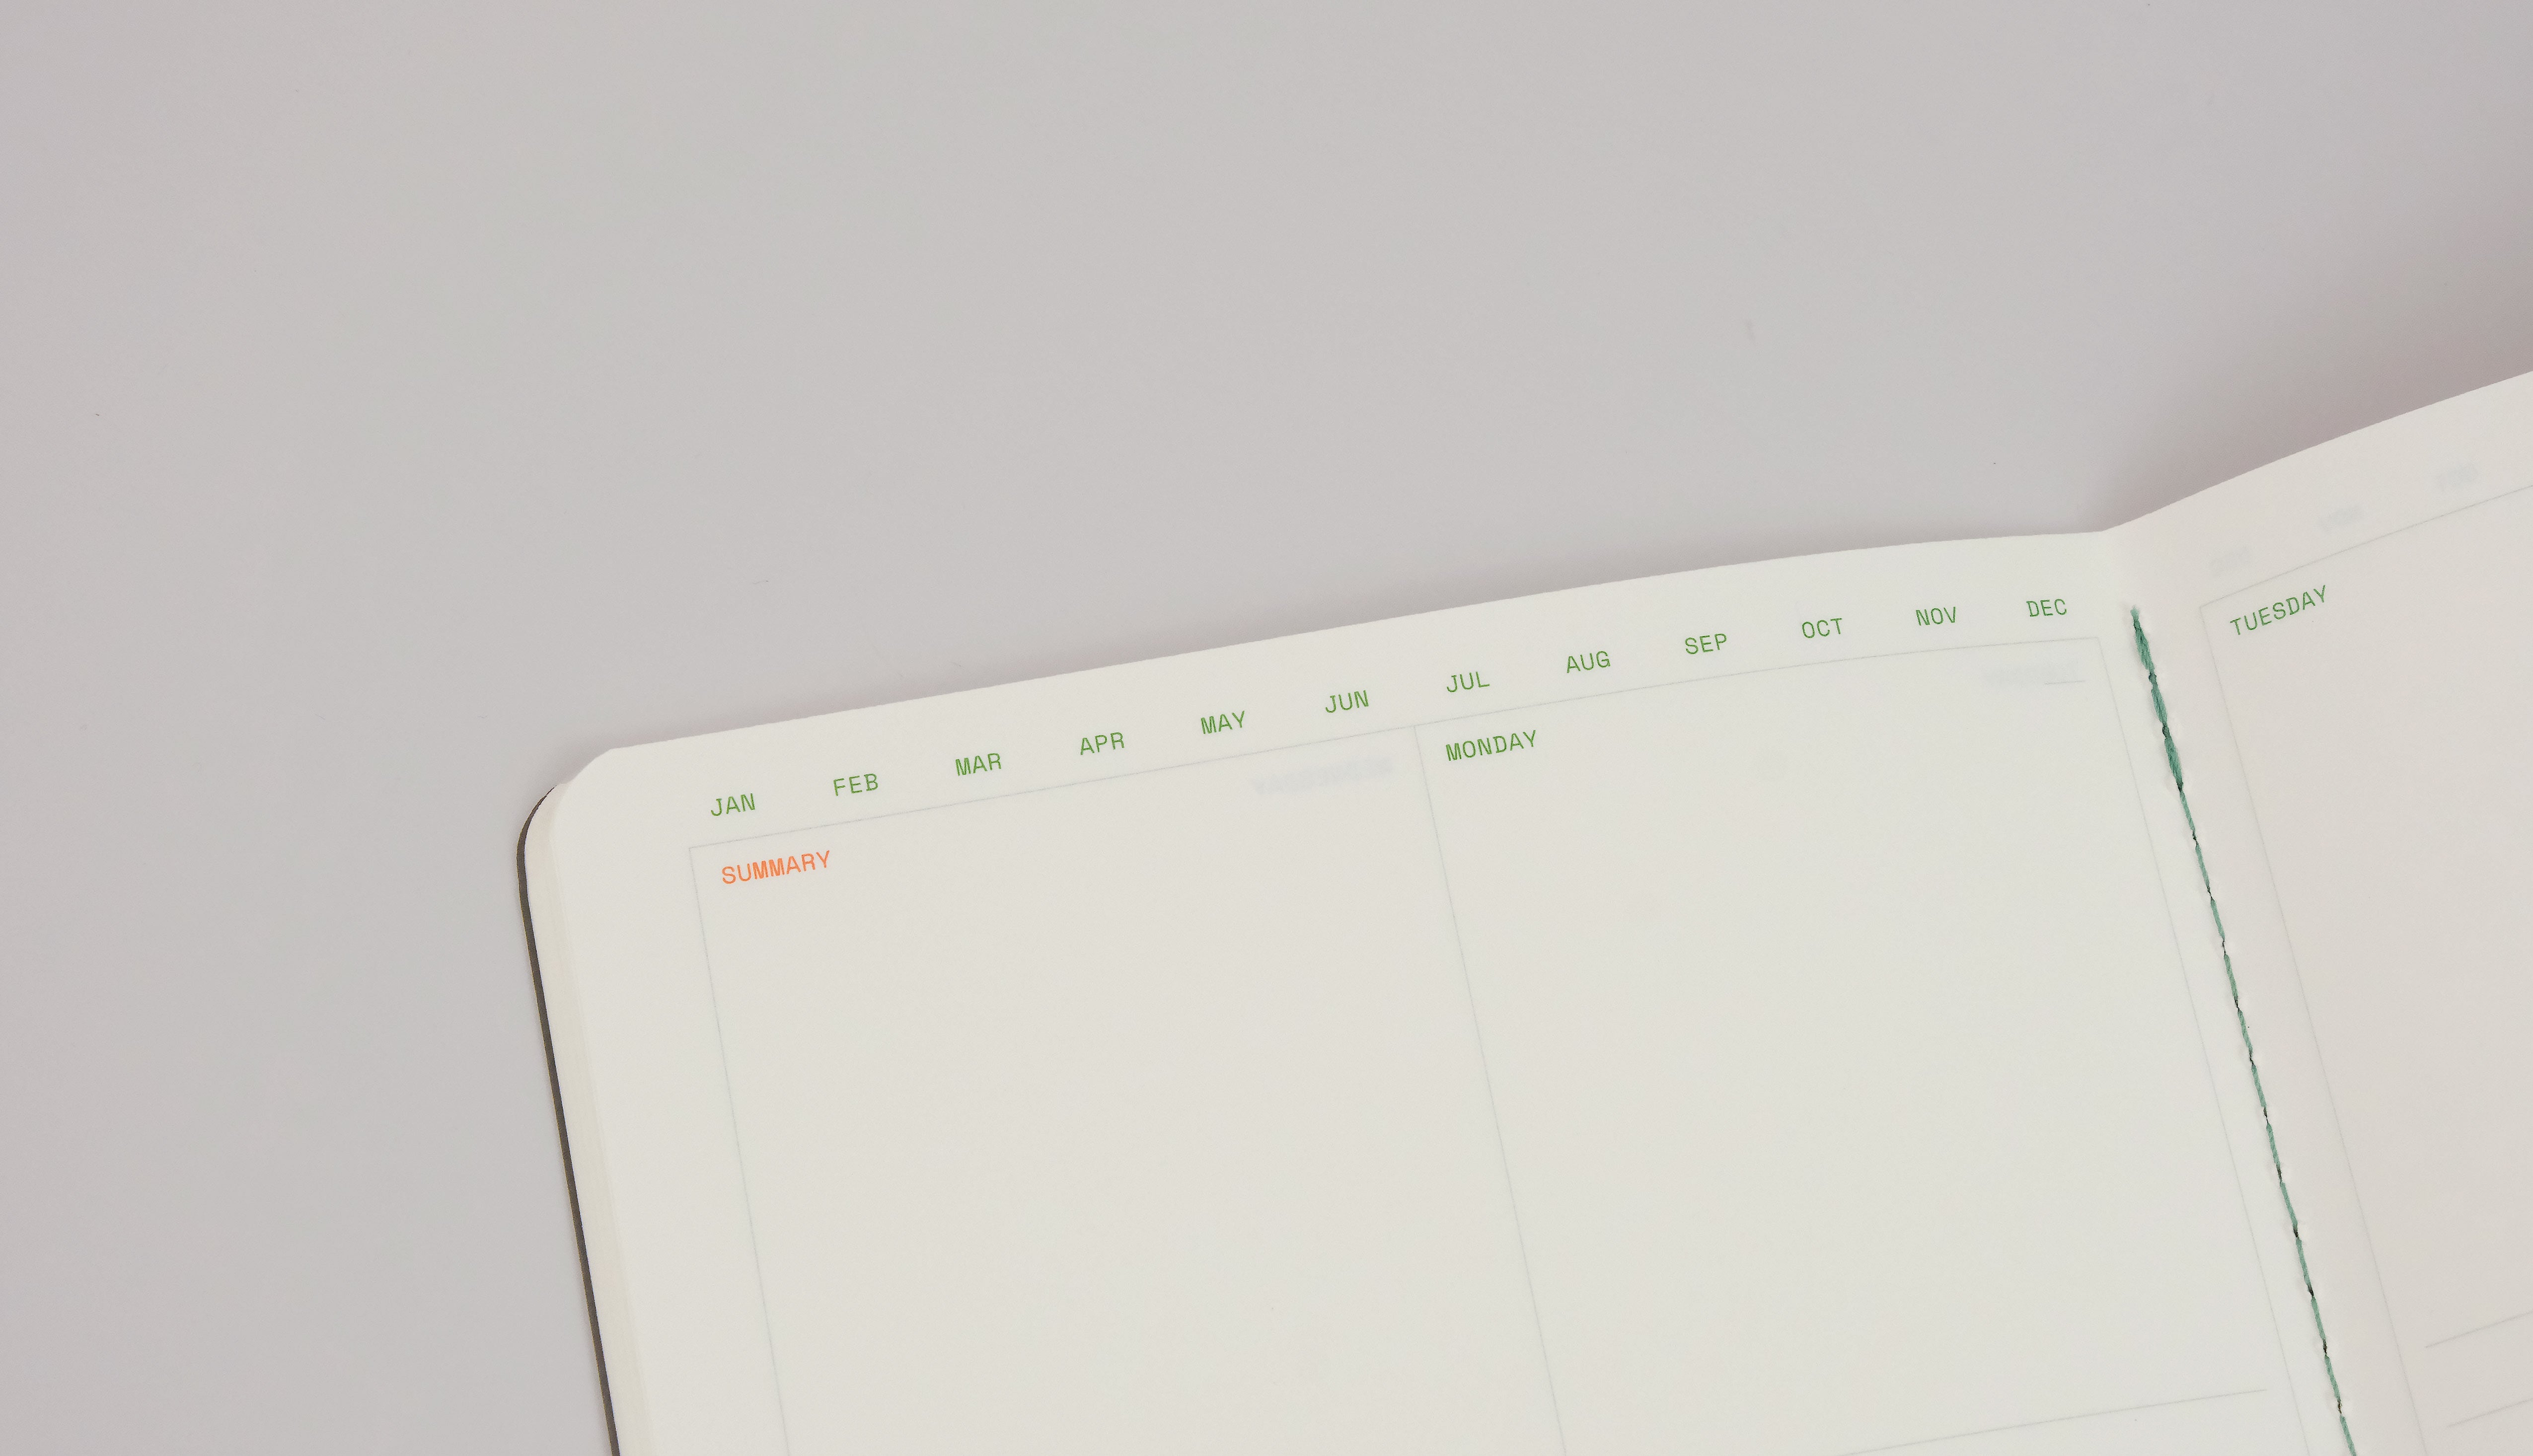 full<h3>Dateless Planner</h3><p>You decide when and how you use it, as simple as that.</p>